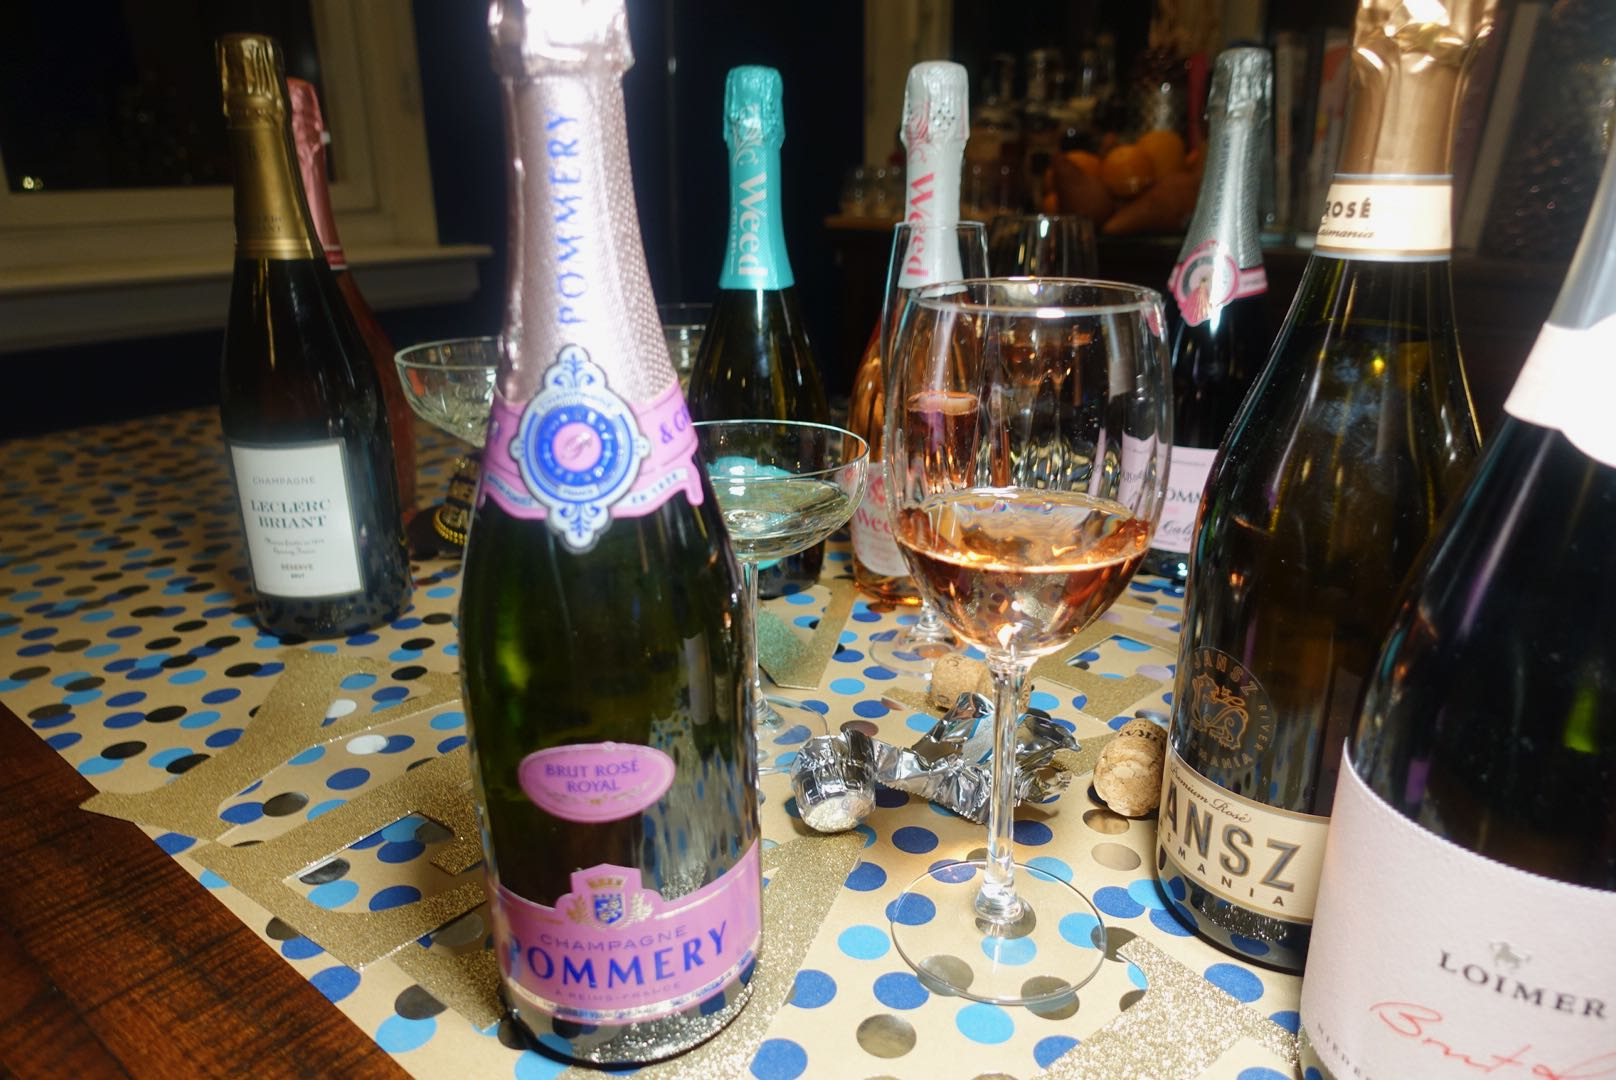 JANSZ Tasmania Premium Rosé NV The Best Bubbly For New Year's Eve